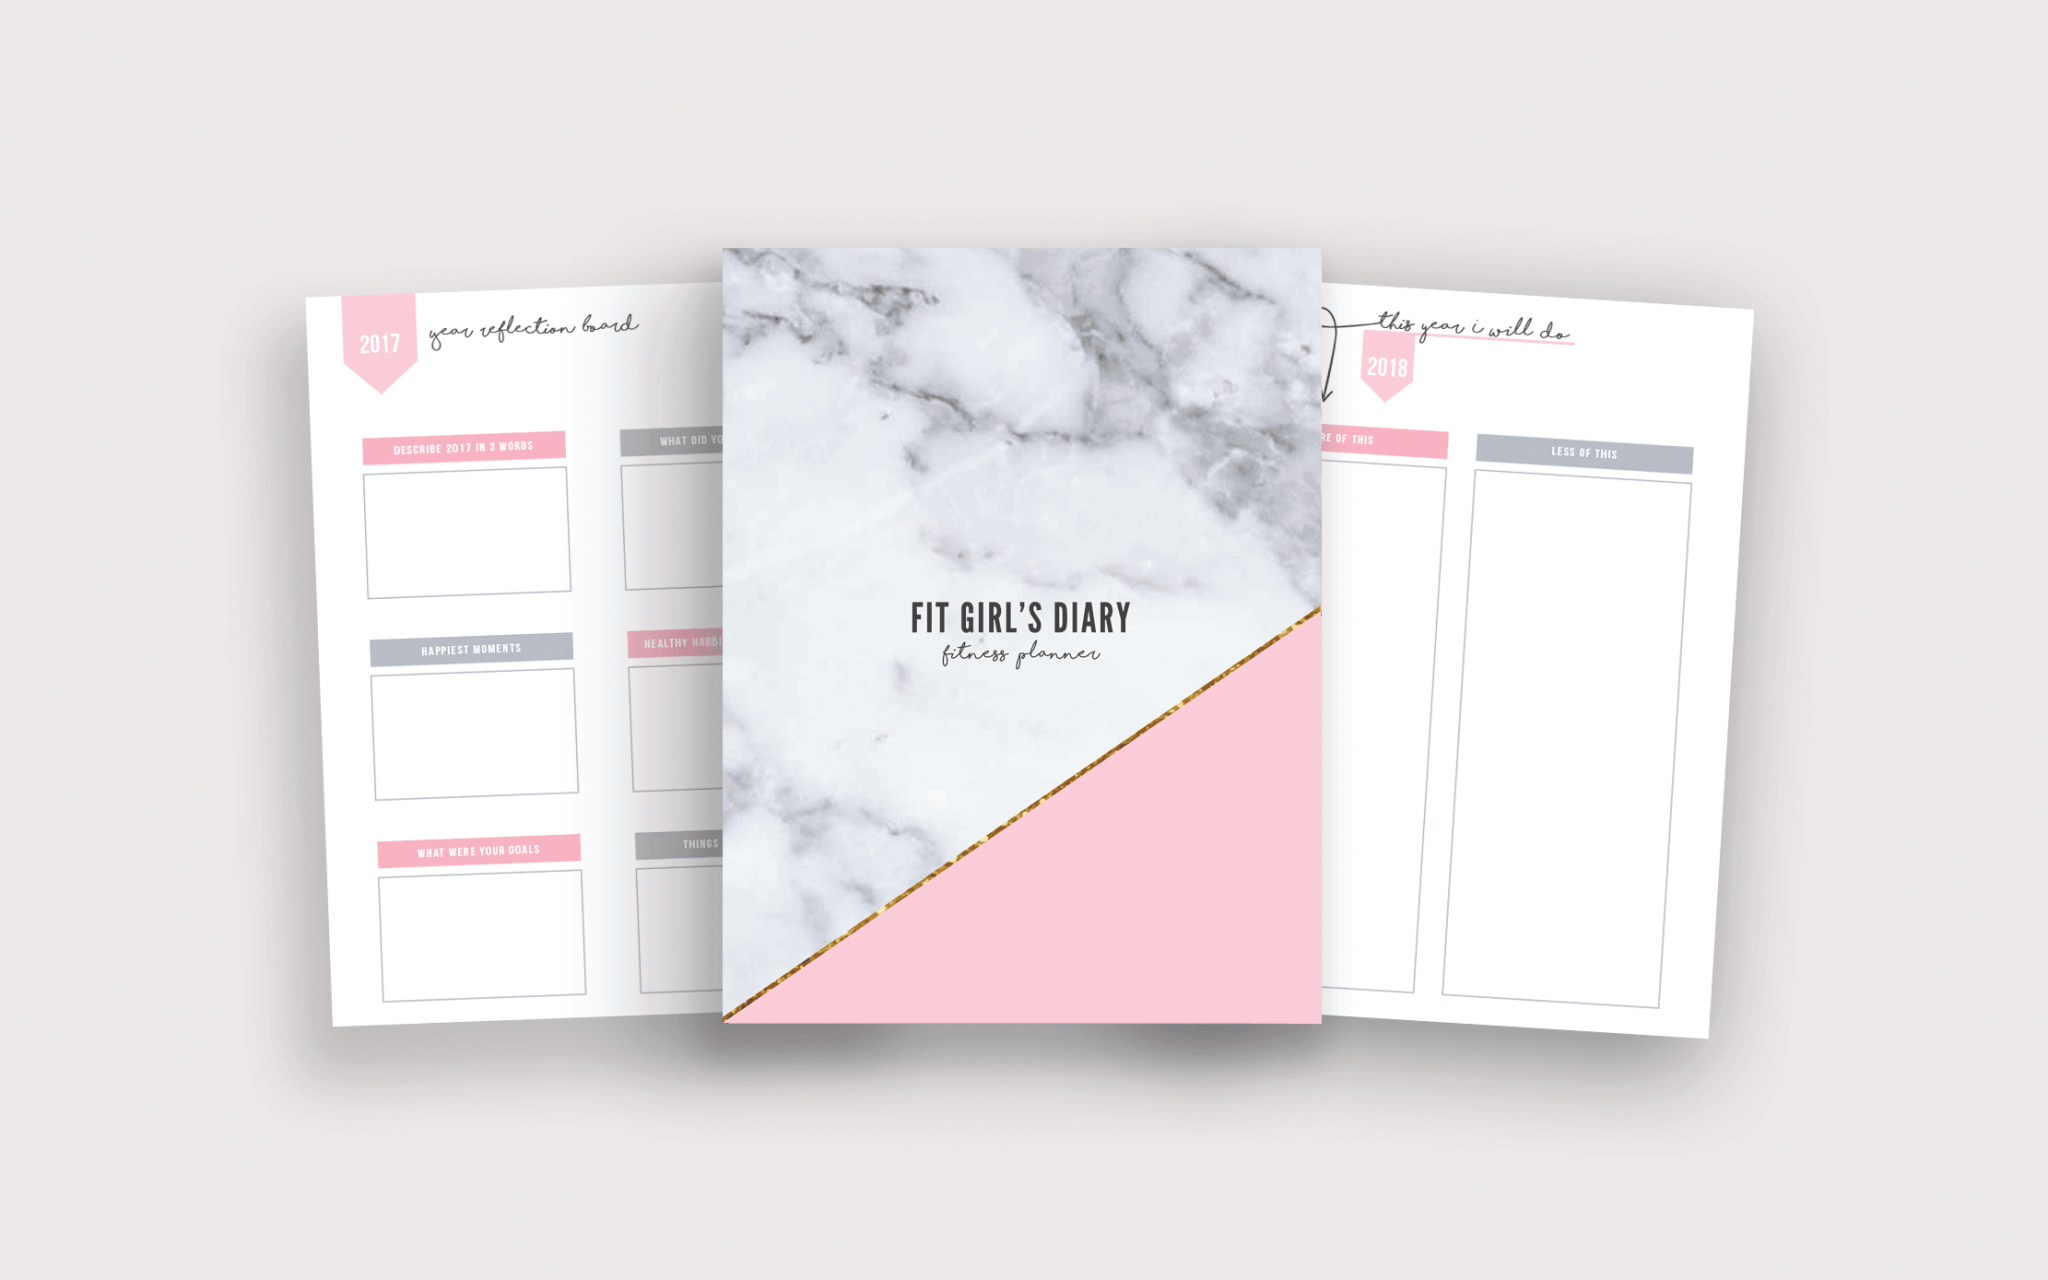 photograph about Fitness Planner Printable identified as 2018 Health Planner Printable Package - Your Planner In direction of